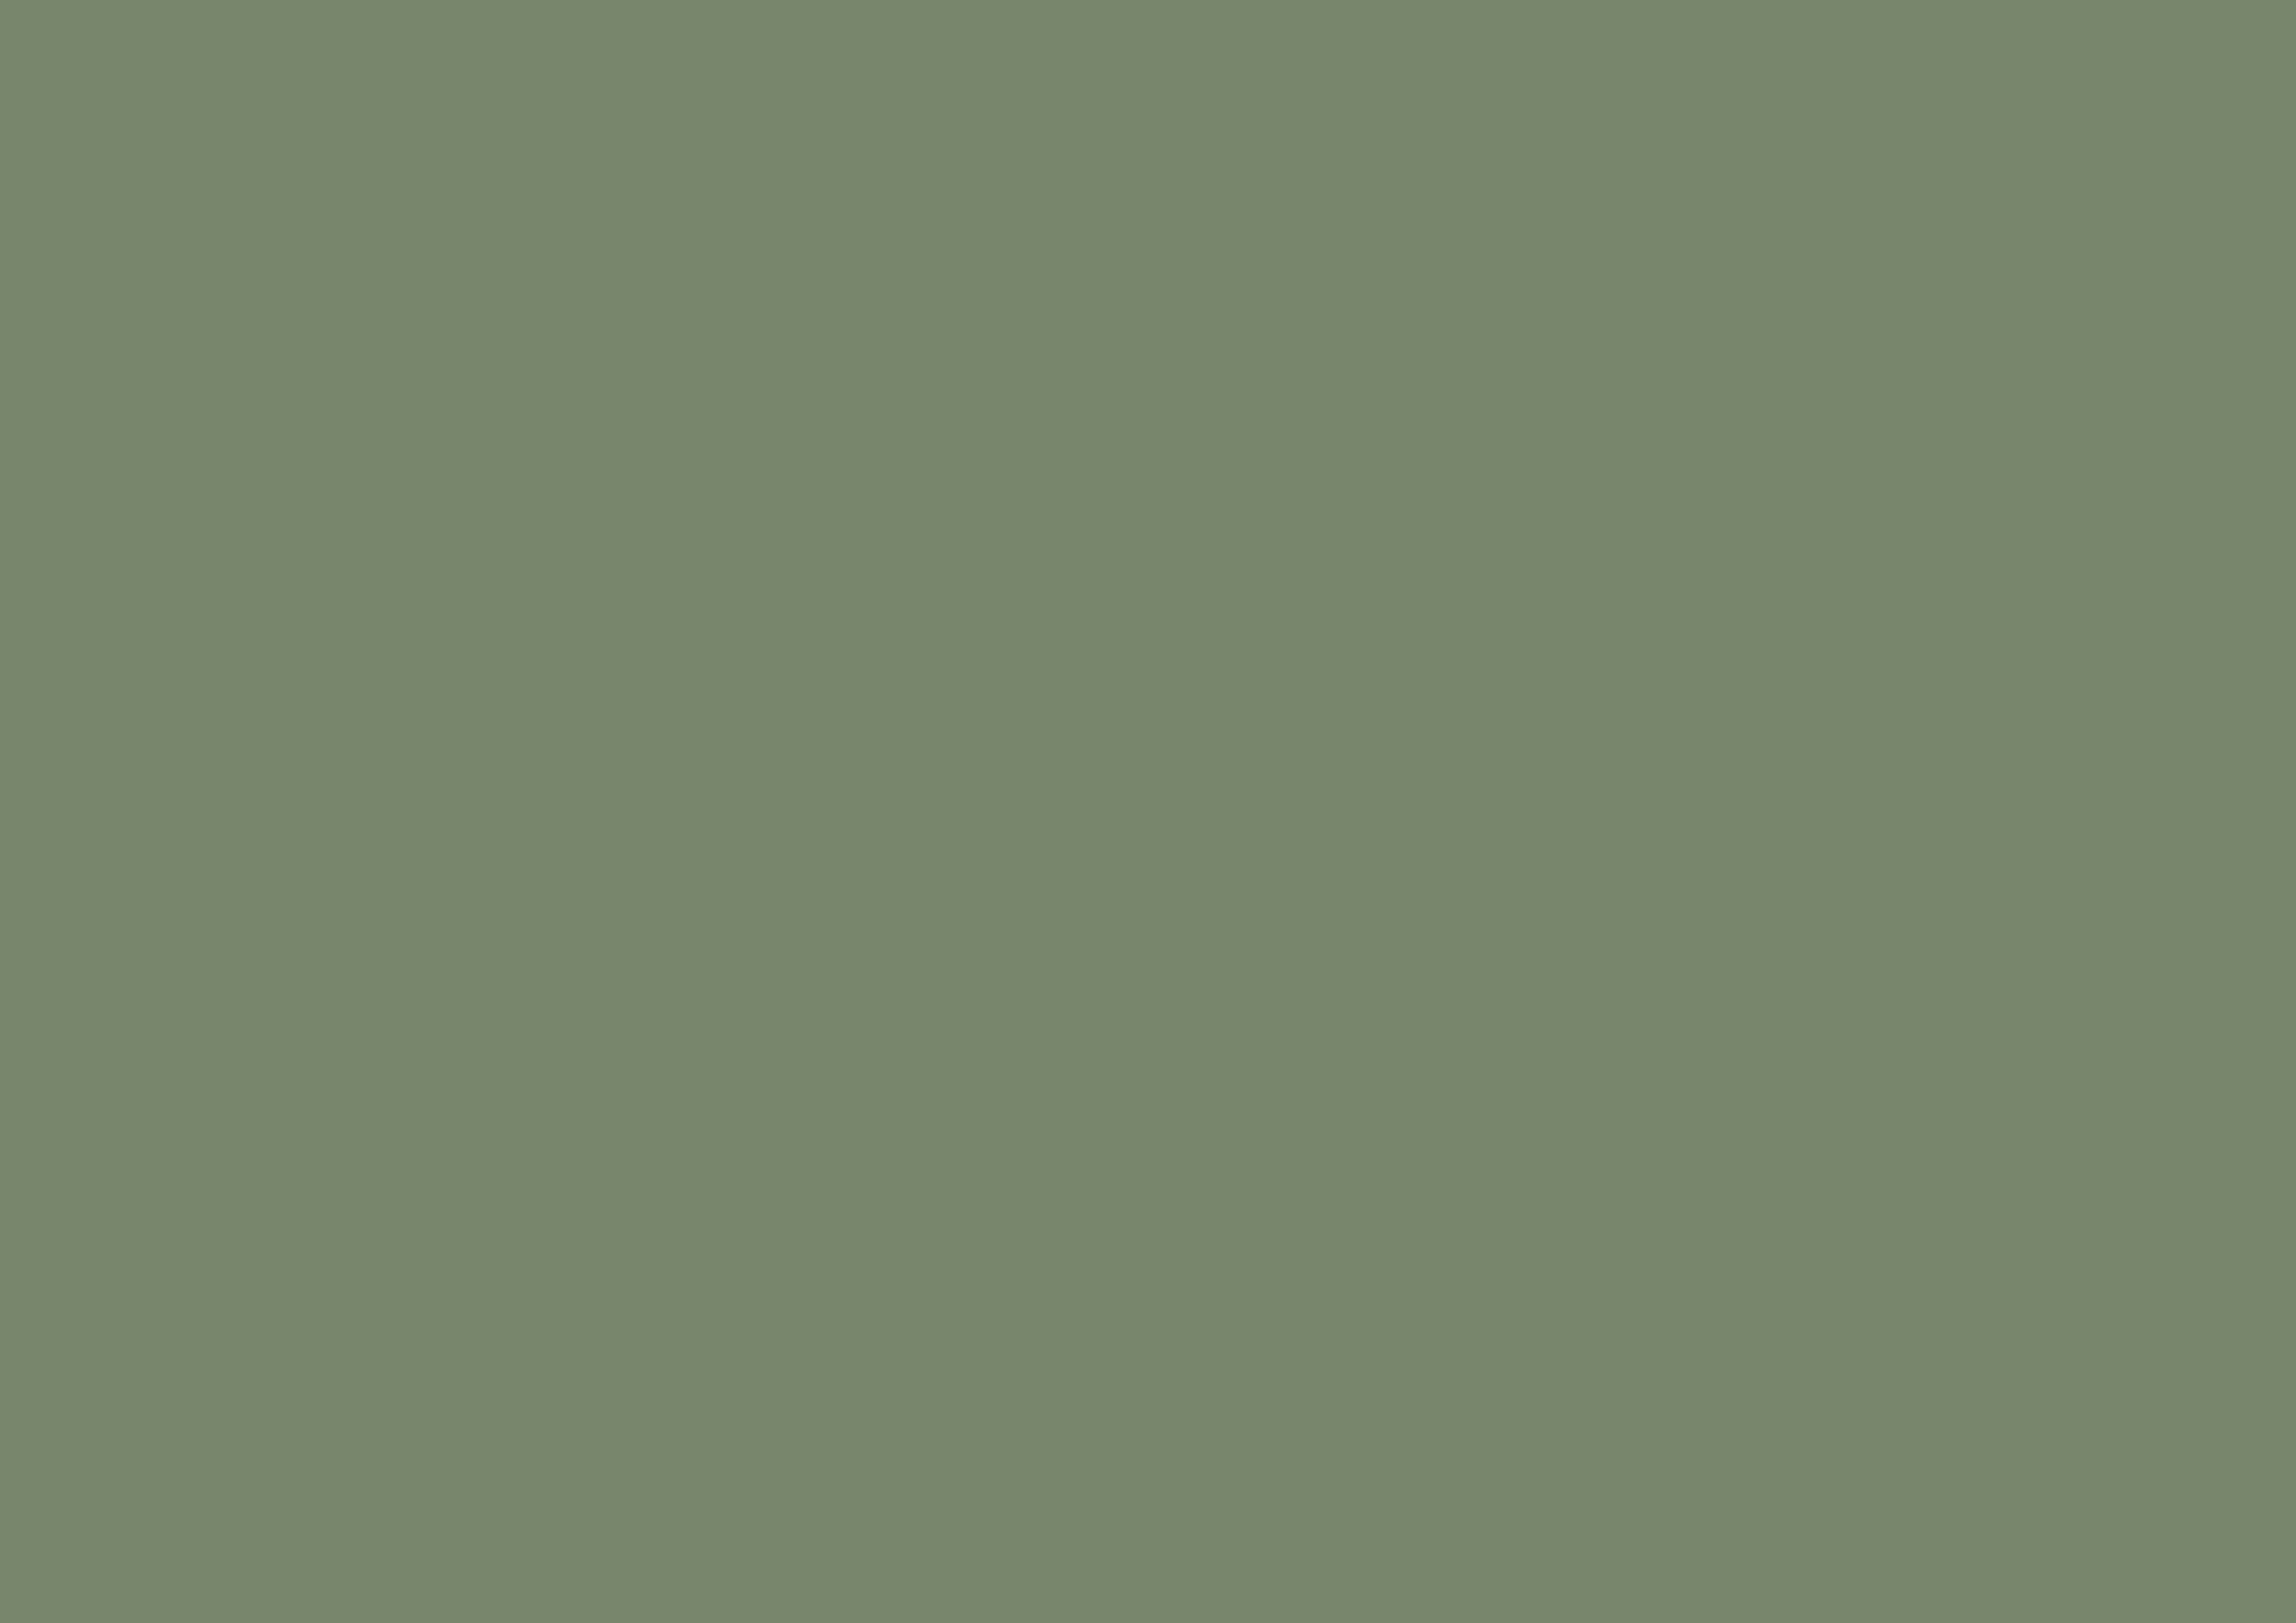 3508x2480 Camouflage Green Solid Color Background